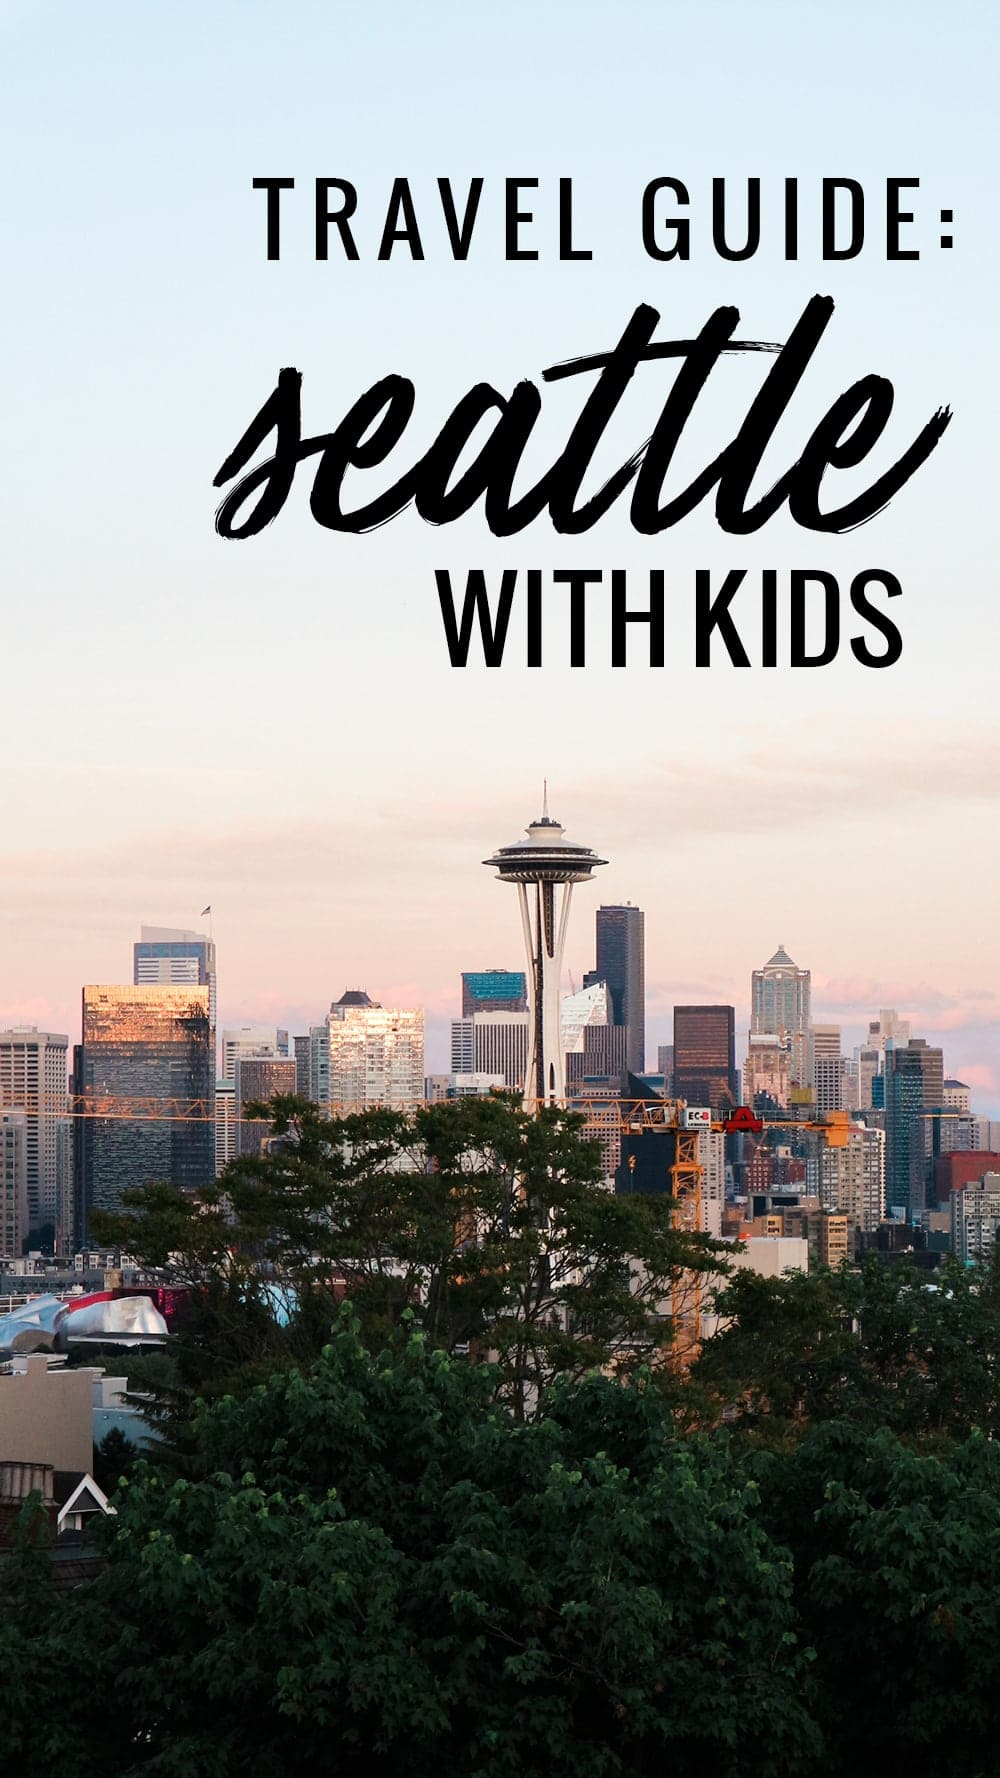 Seattle Travel Guide: Seattle with Kids by popular lifestyle blogger Meg O. on the Go